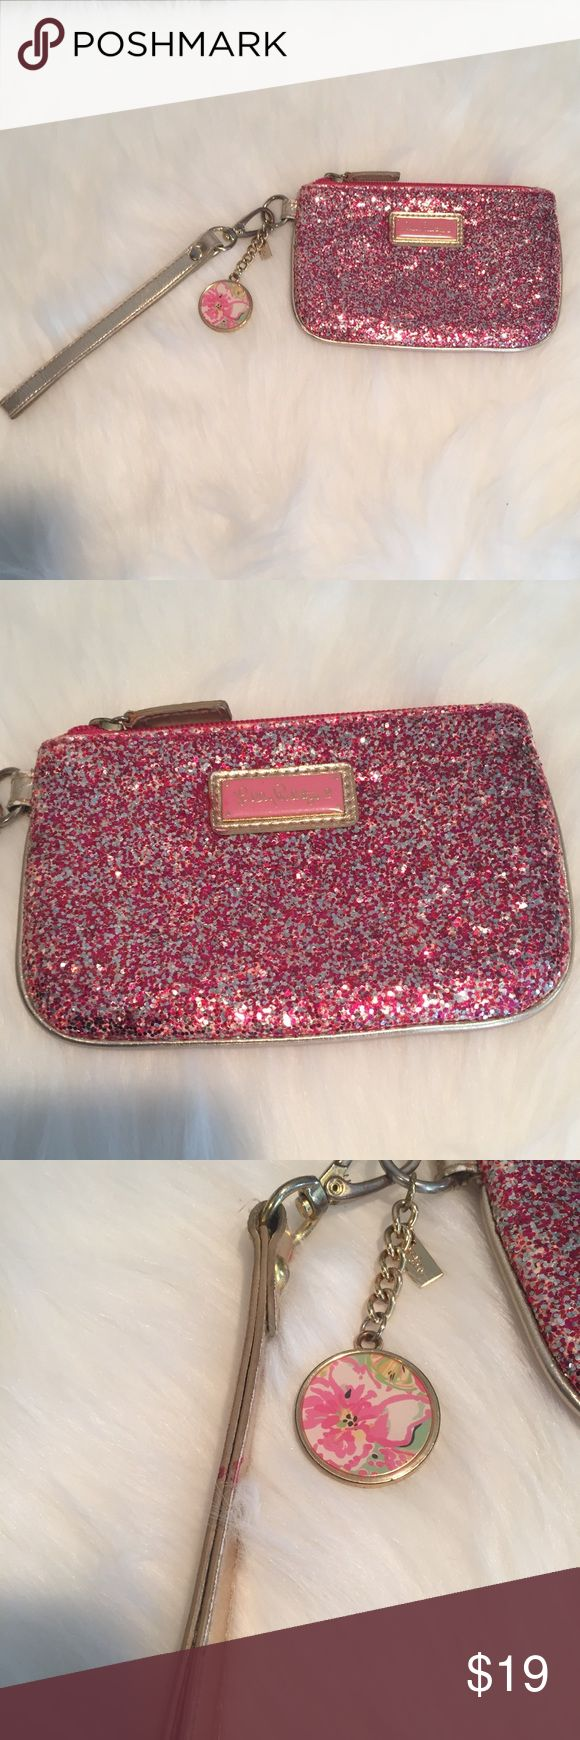 Lilly Pulitzer pink and silver glitter wristlet Lilly Pulitzer pink and silver glitter wristlet 6x4. Has some damage on straps (see pictures). Zipper is functional and super cute. Lilly Pulitzer Bags Clutches & Wristlets